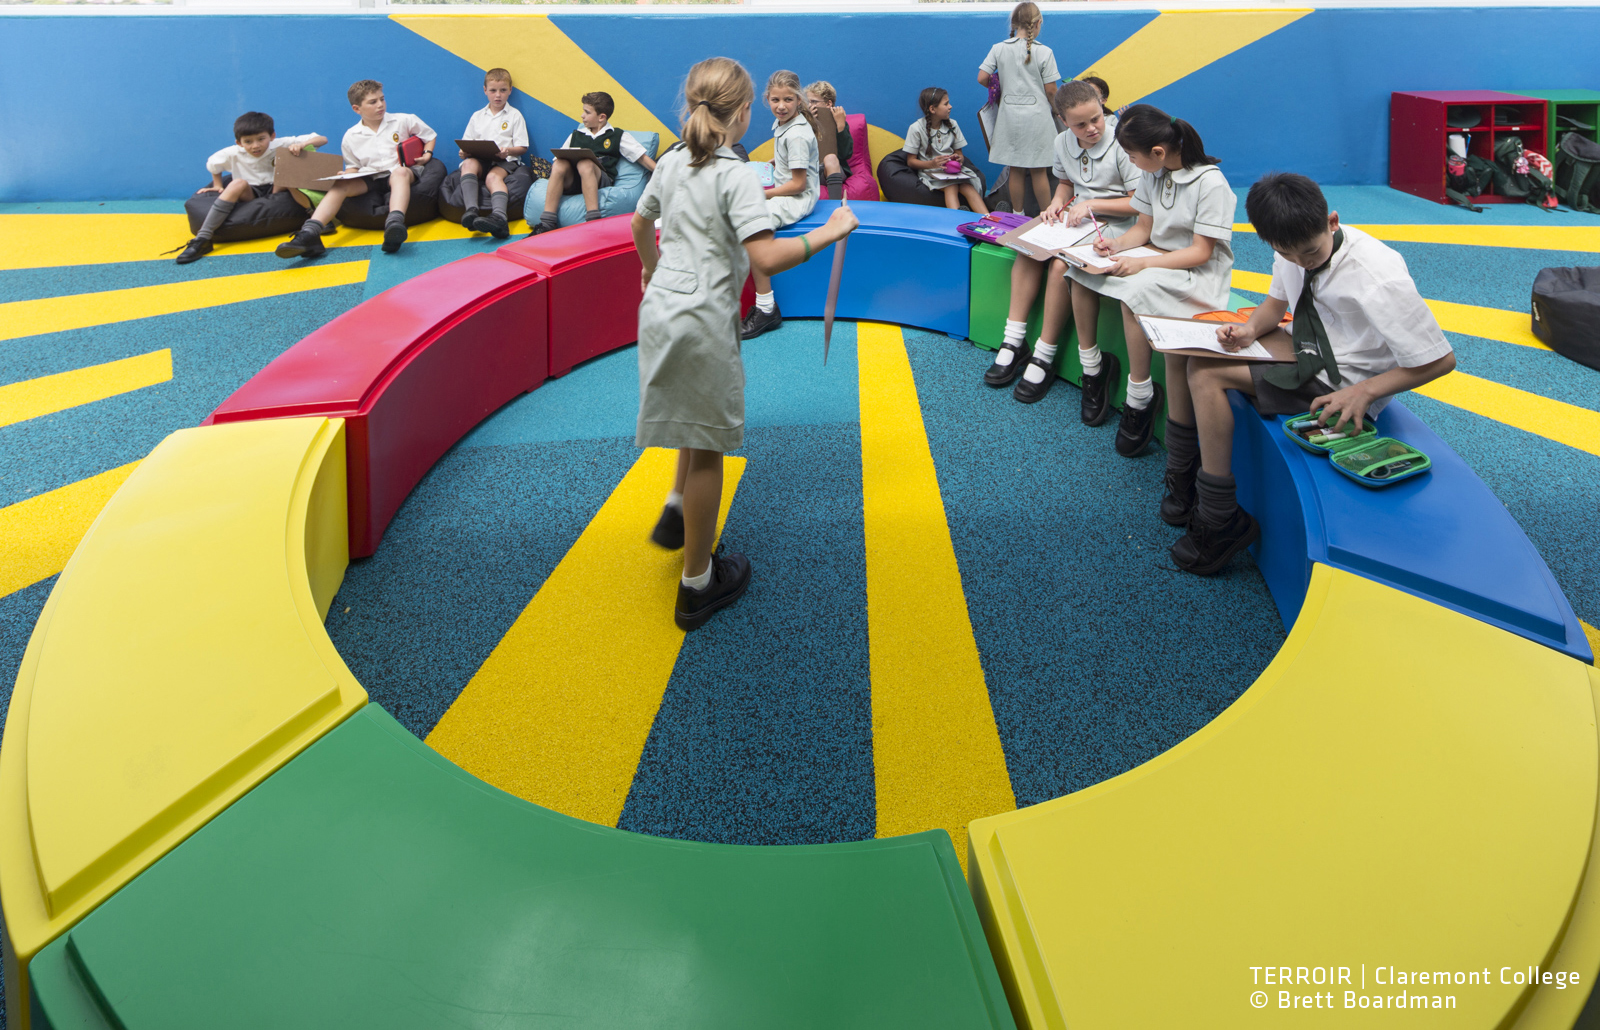 Claremont College Stage 4 Learning Environments